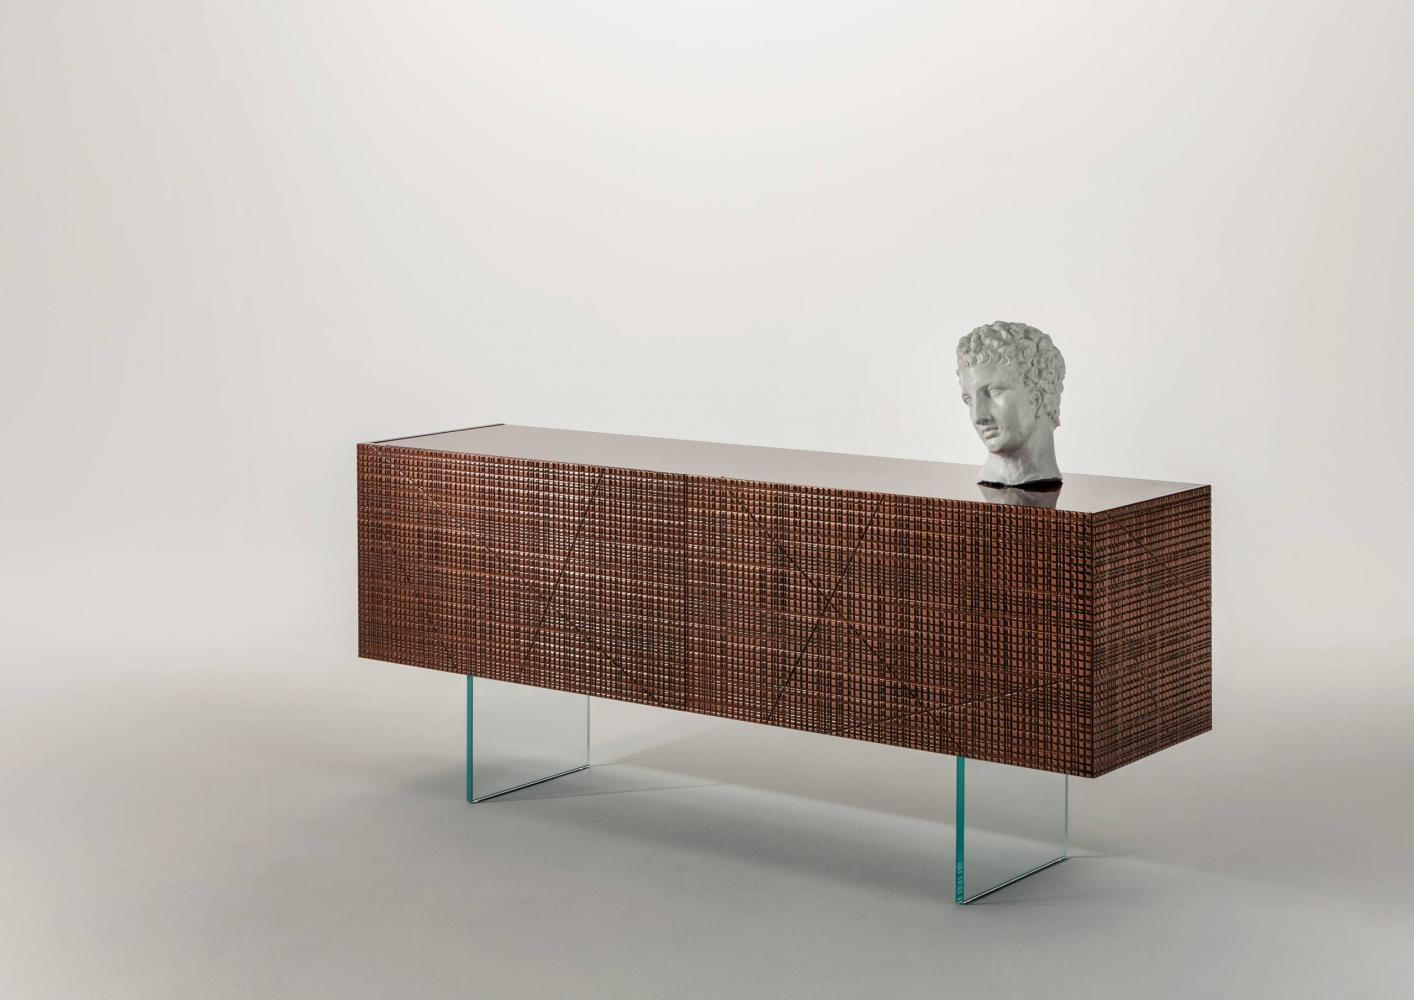 Laurameroni 20th Anniversary Luxury Sideboard BD 51 in special Liquid Metal finish